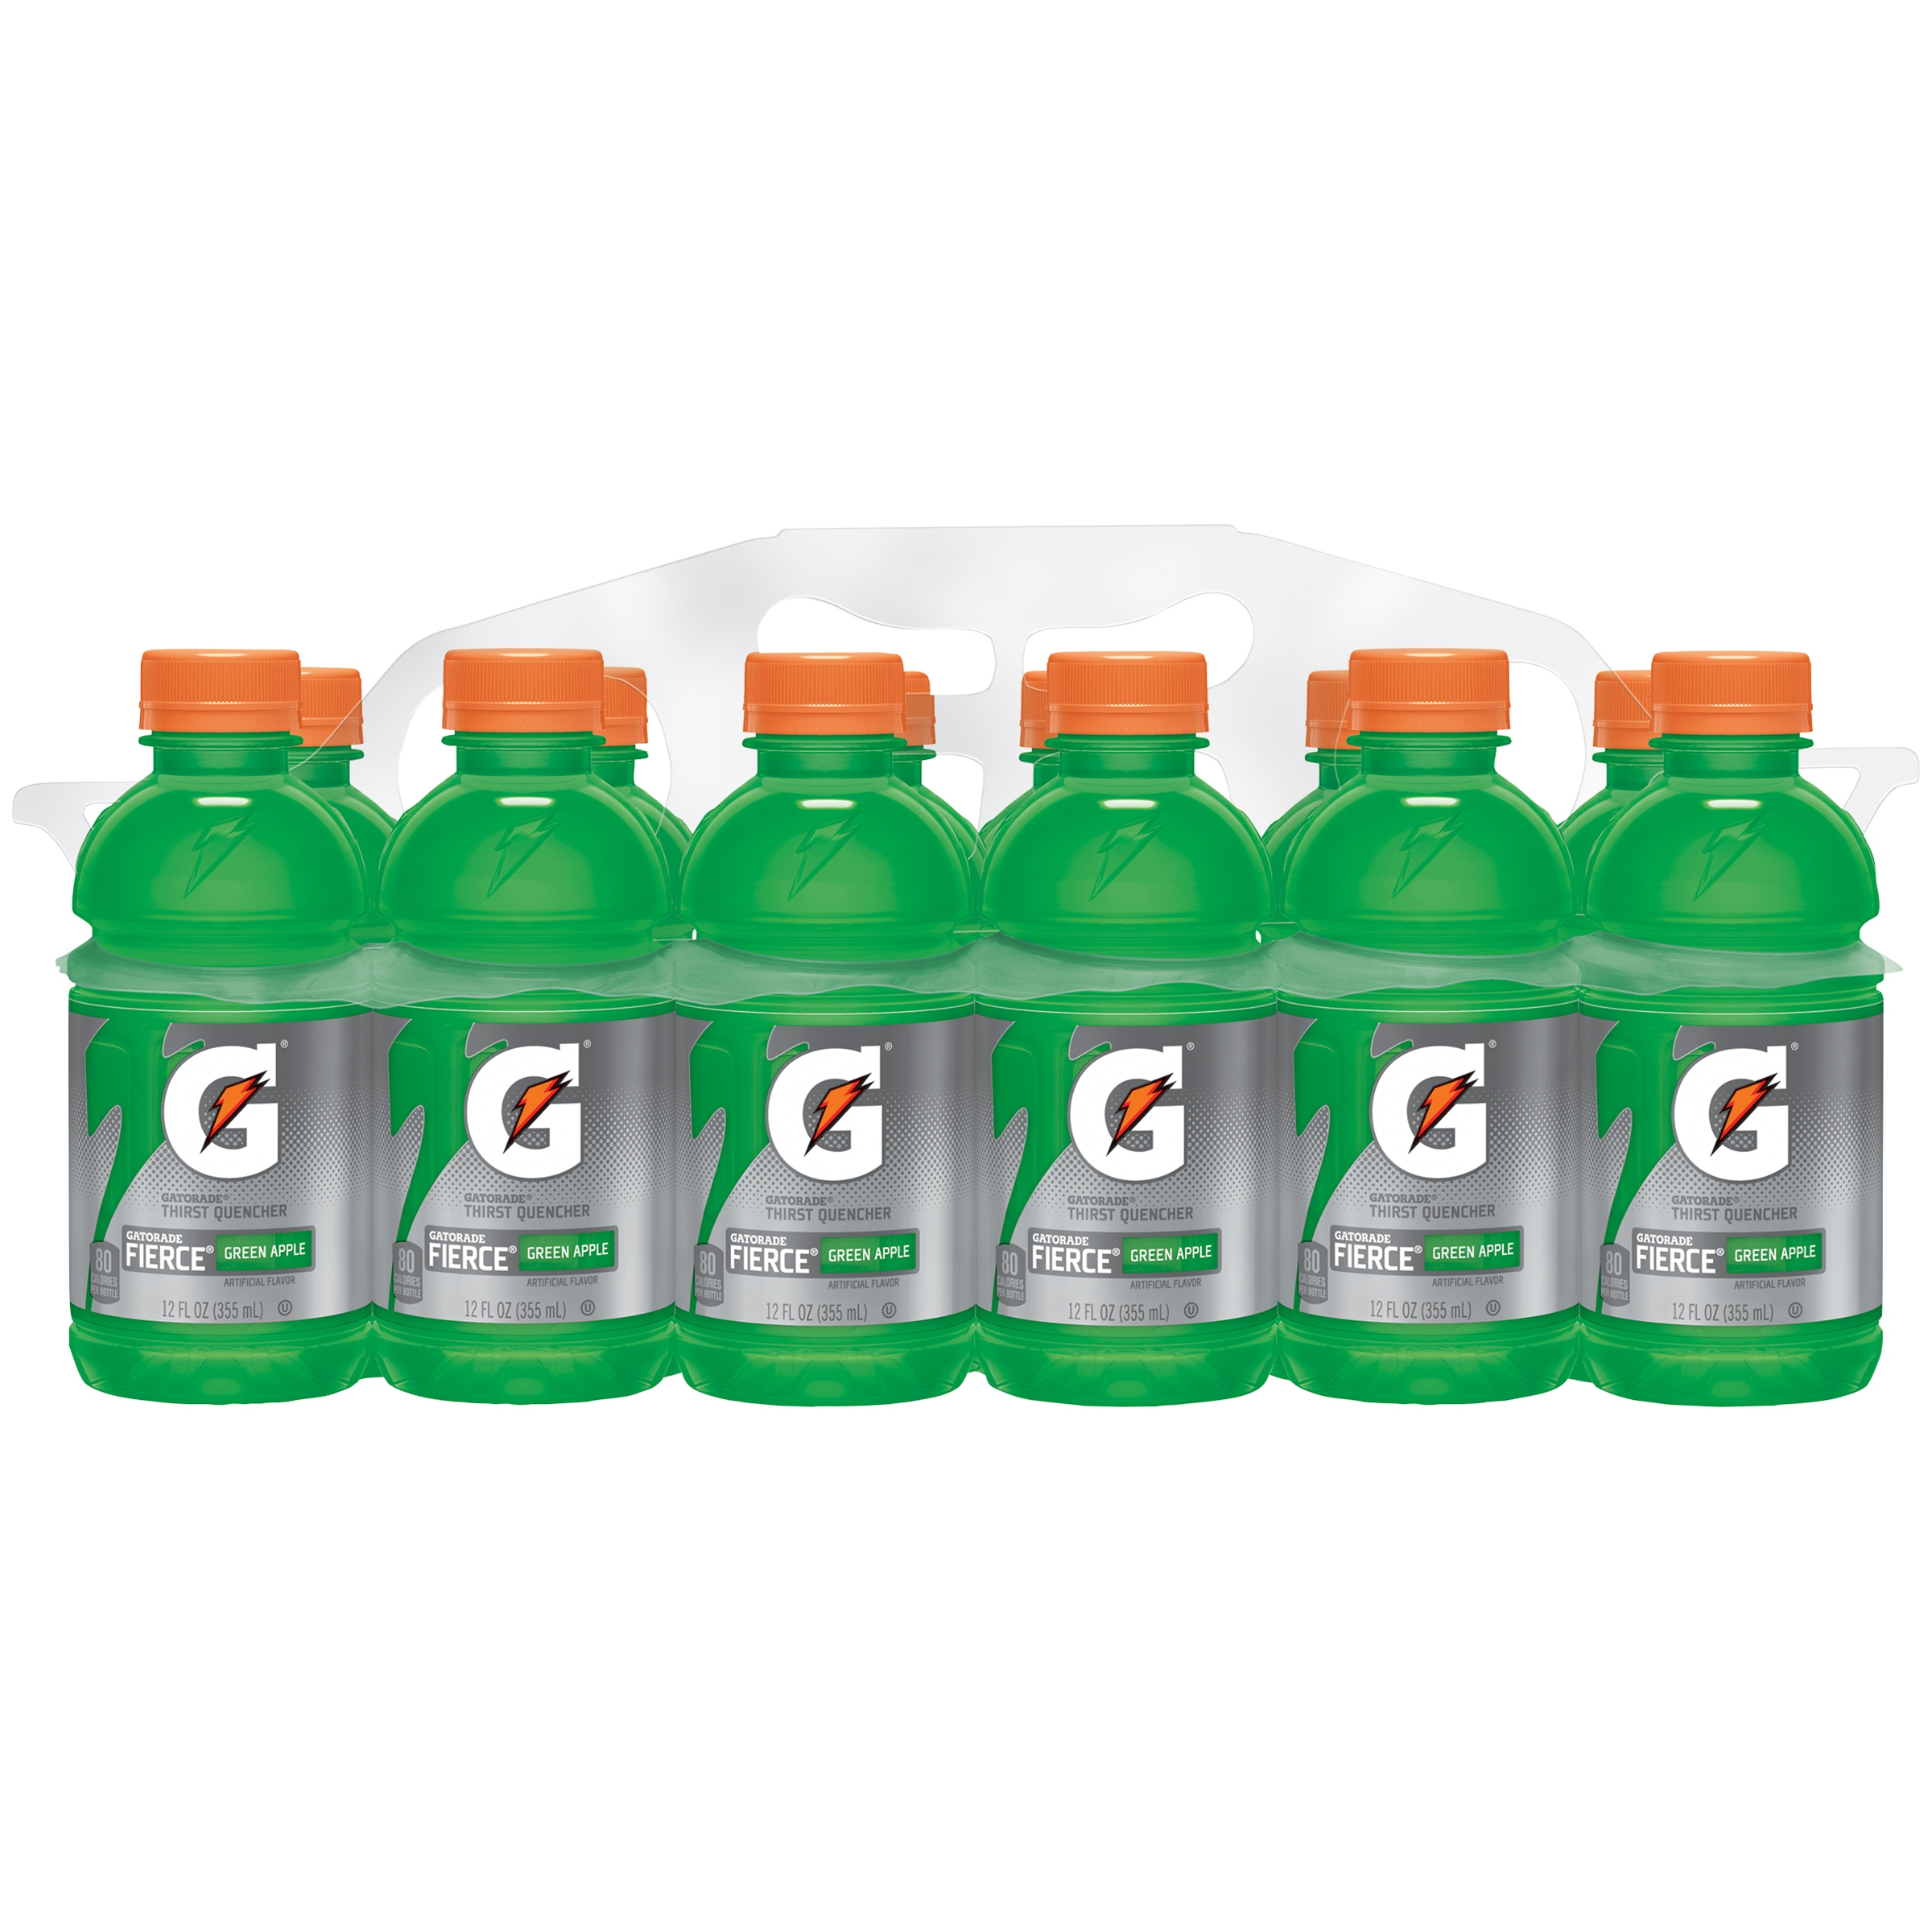 Gatorade Thirst Quencher Sports Drink, Green Apple, 12 Fl Oz, 12 Count